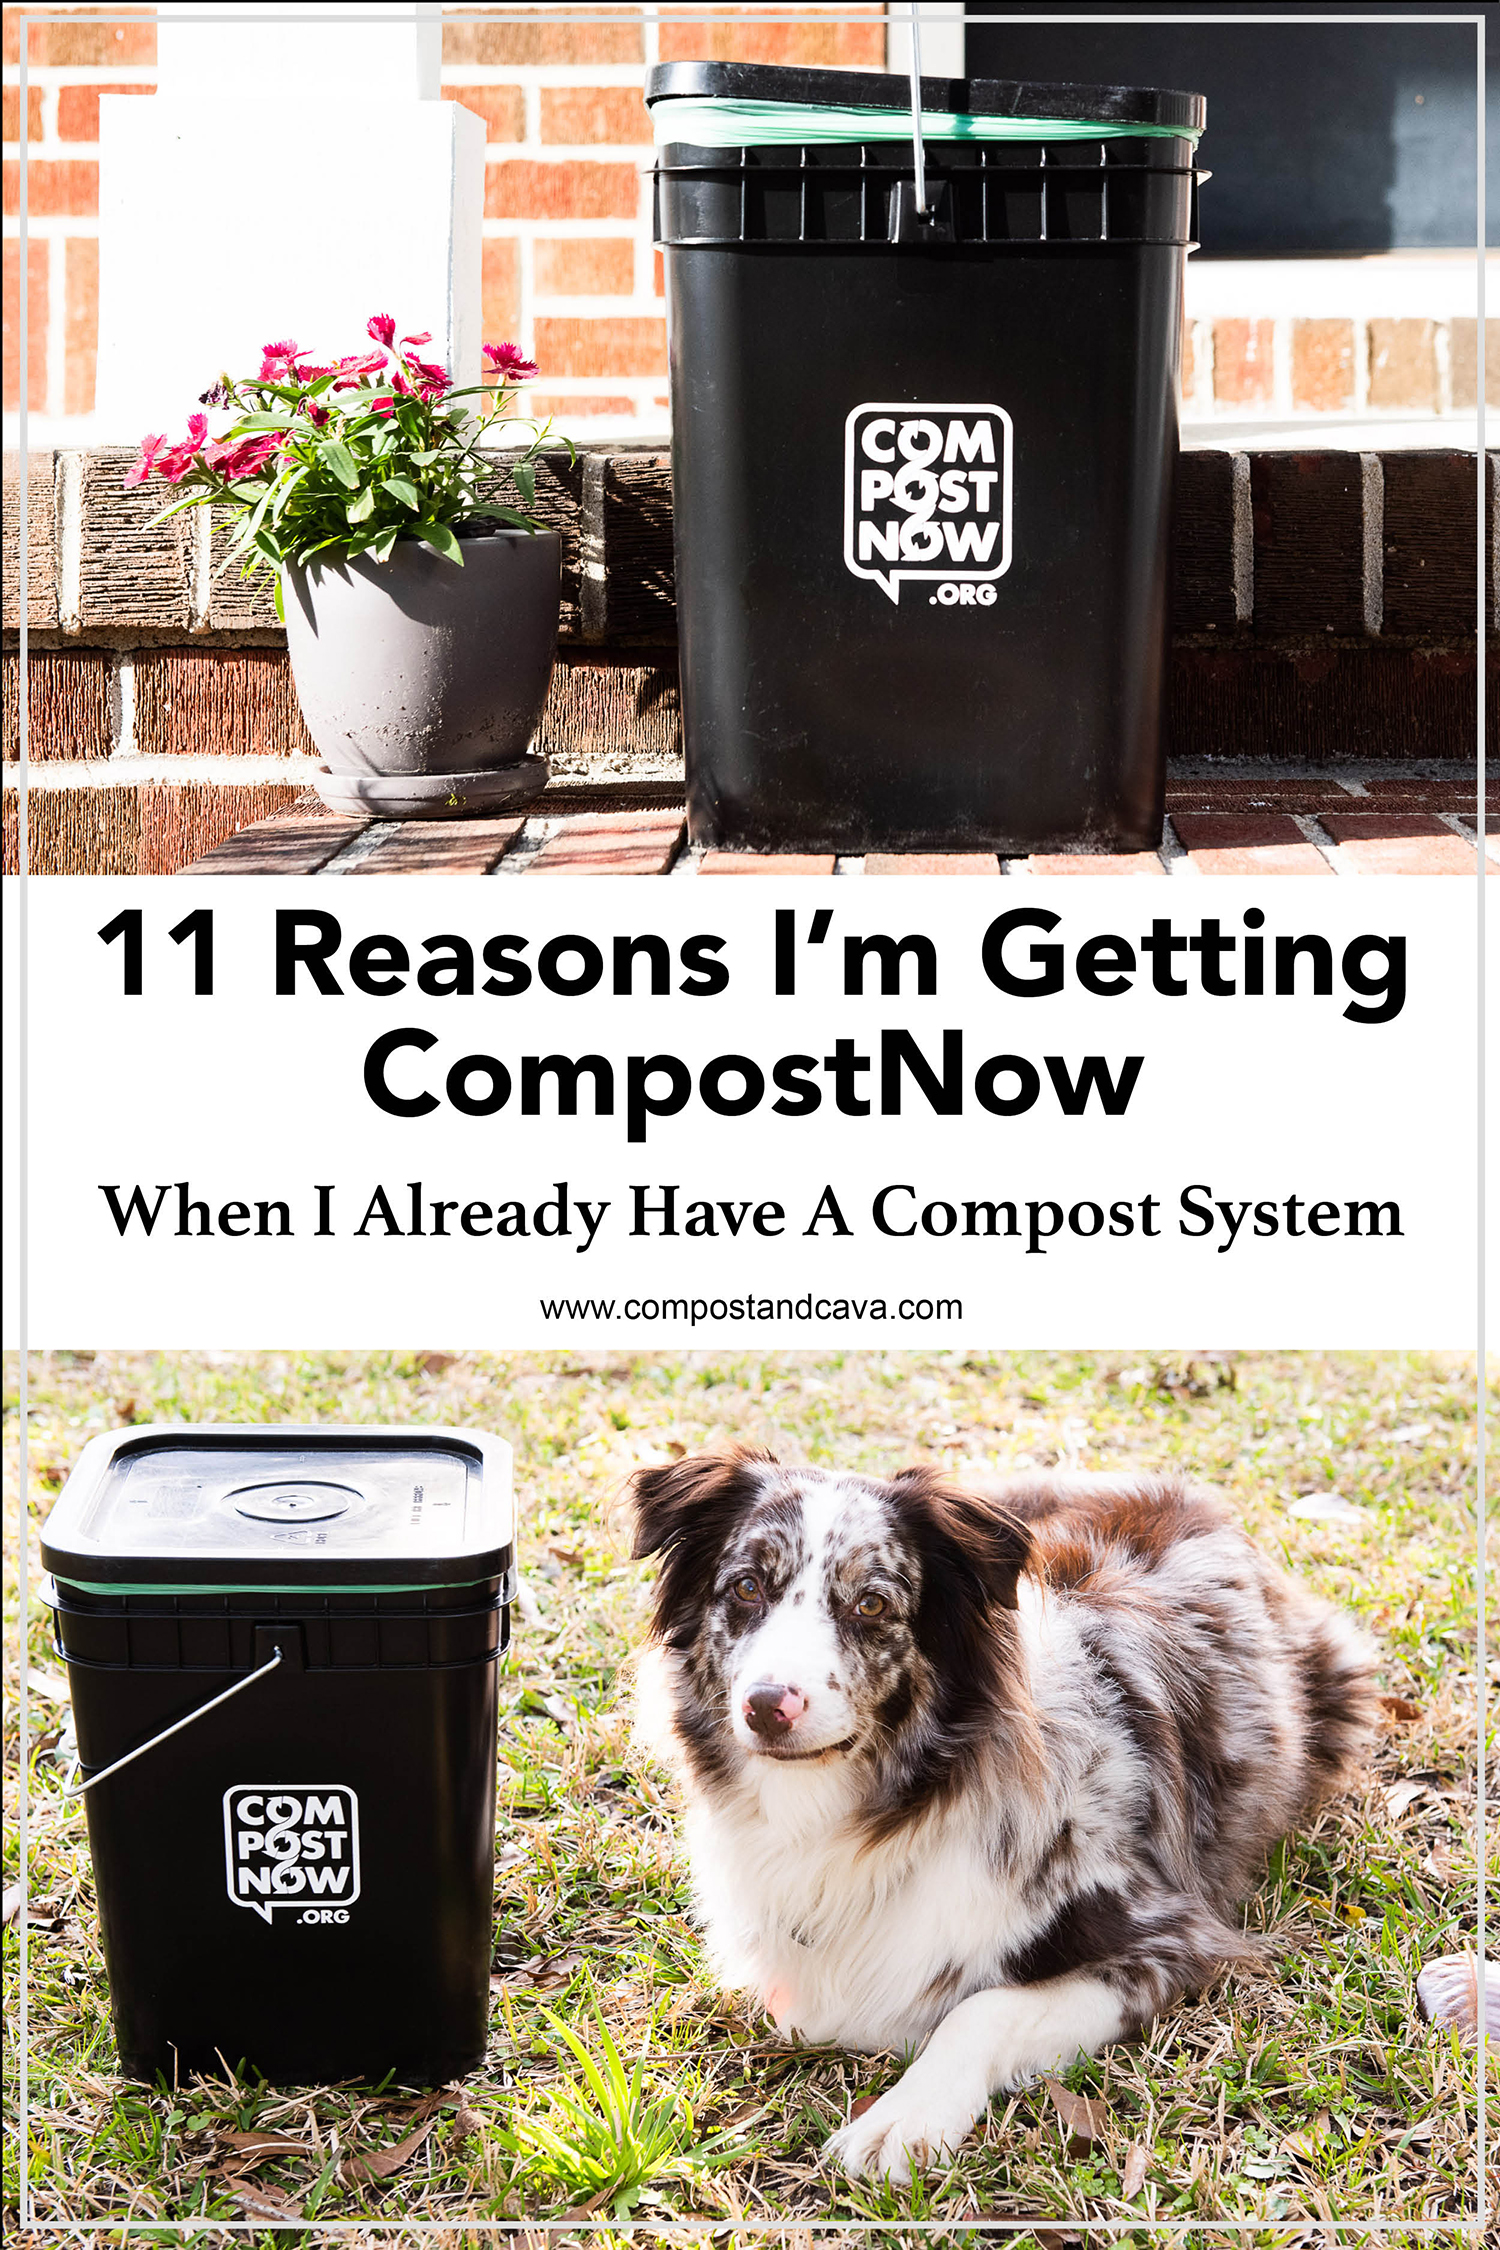 11 Reasons I'm Keeping CompostNow When I Have A Compost System